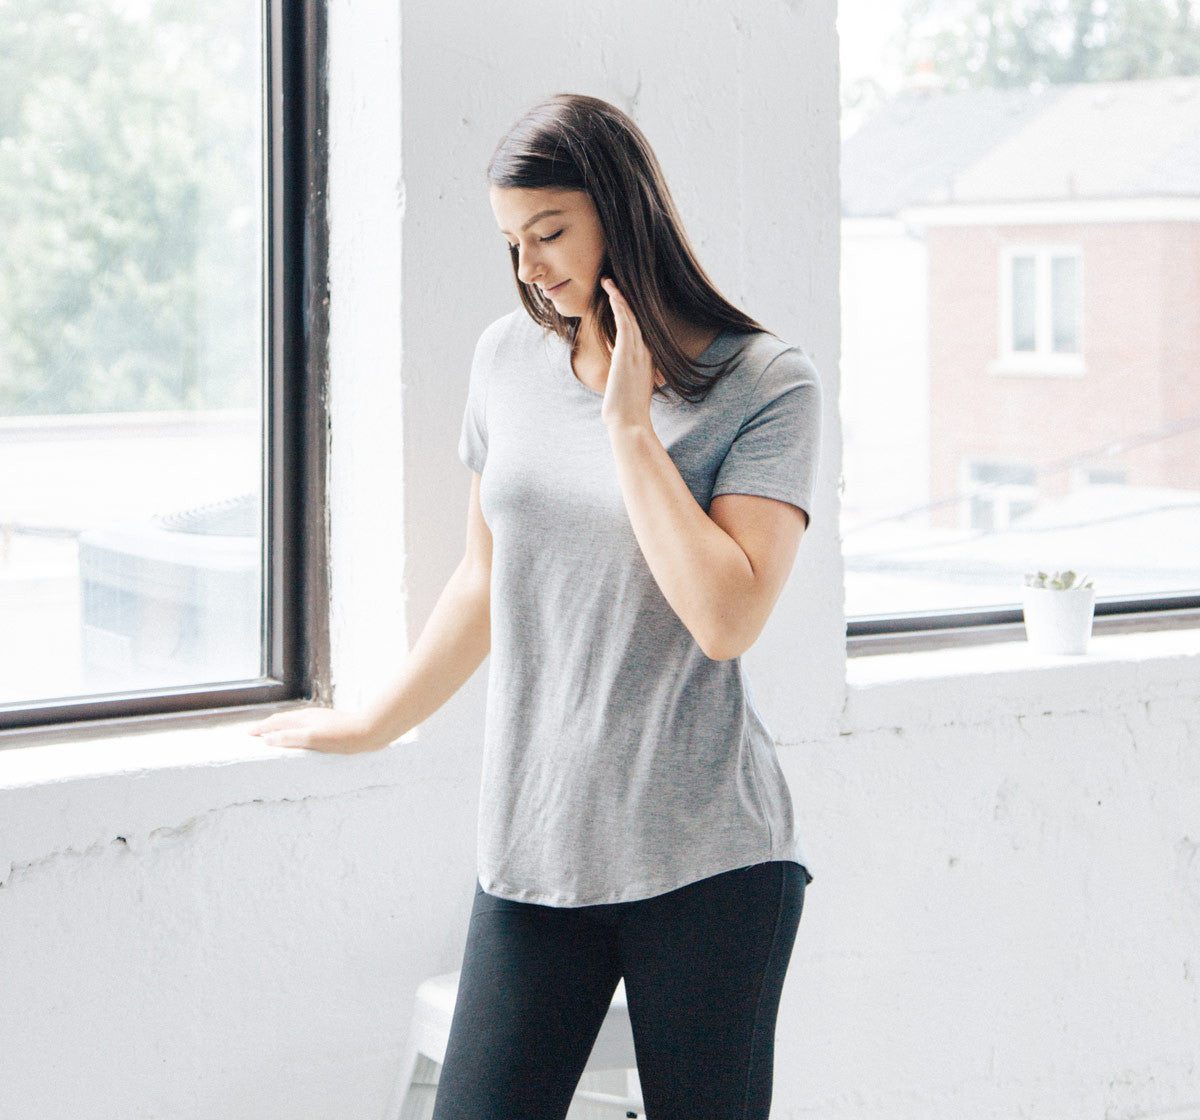 Minimalist Shirt for the Everyday Traveler. Ethically made with sustainable and eco friendly materials.